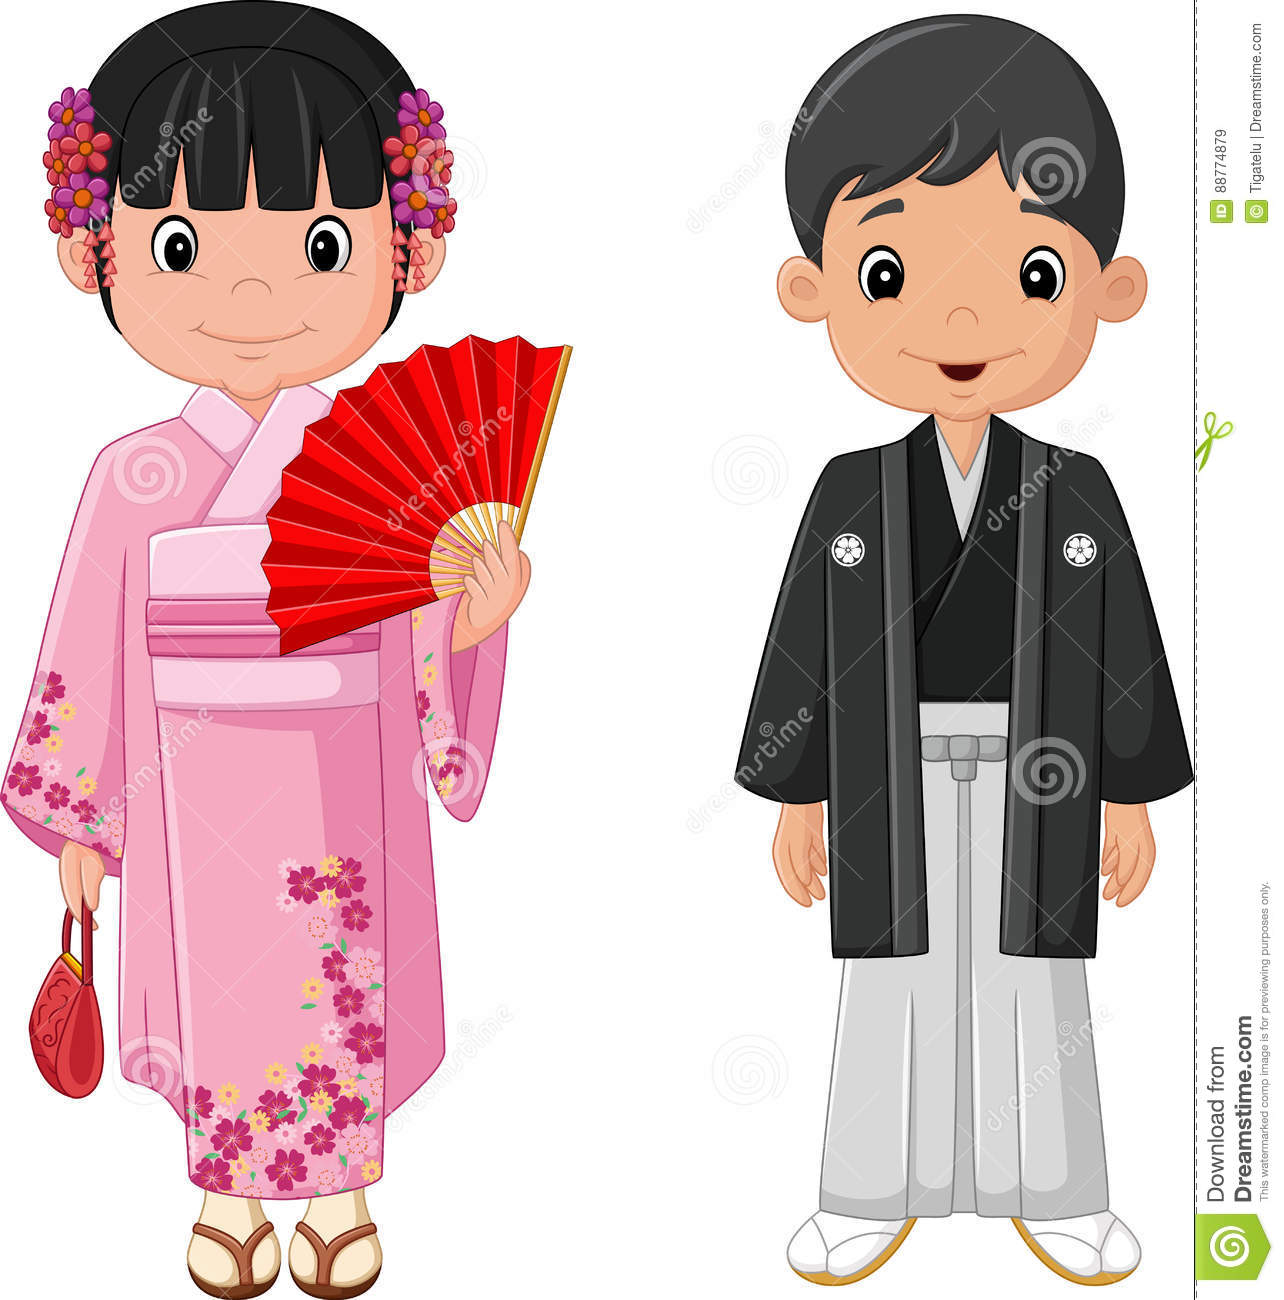 Cartoon couples asians doll